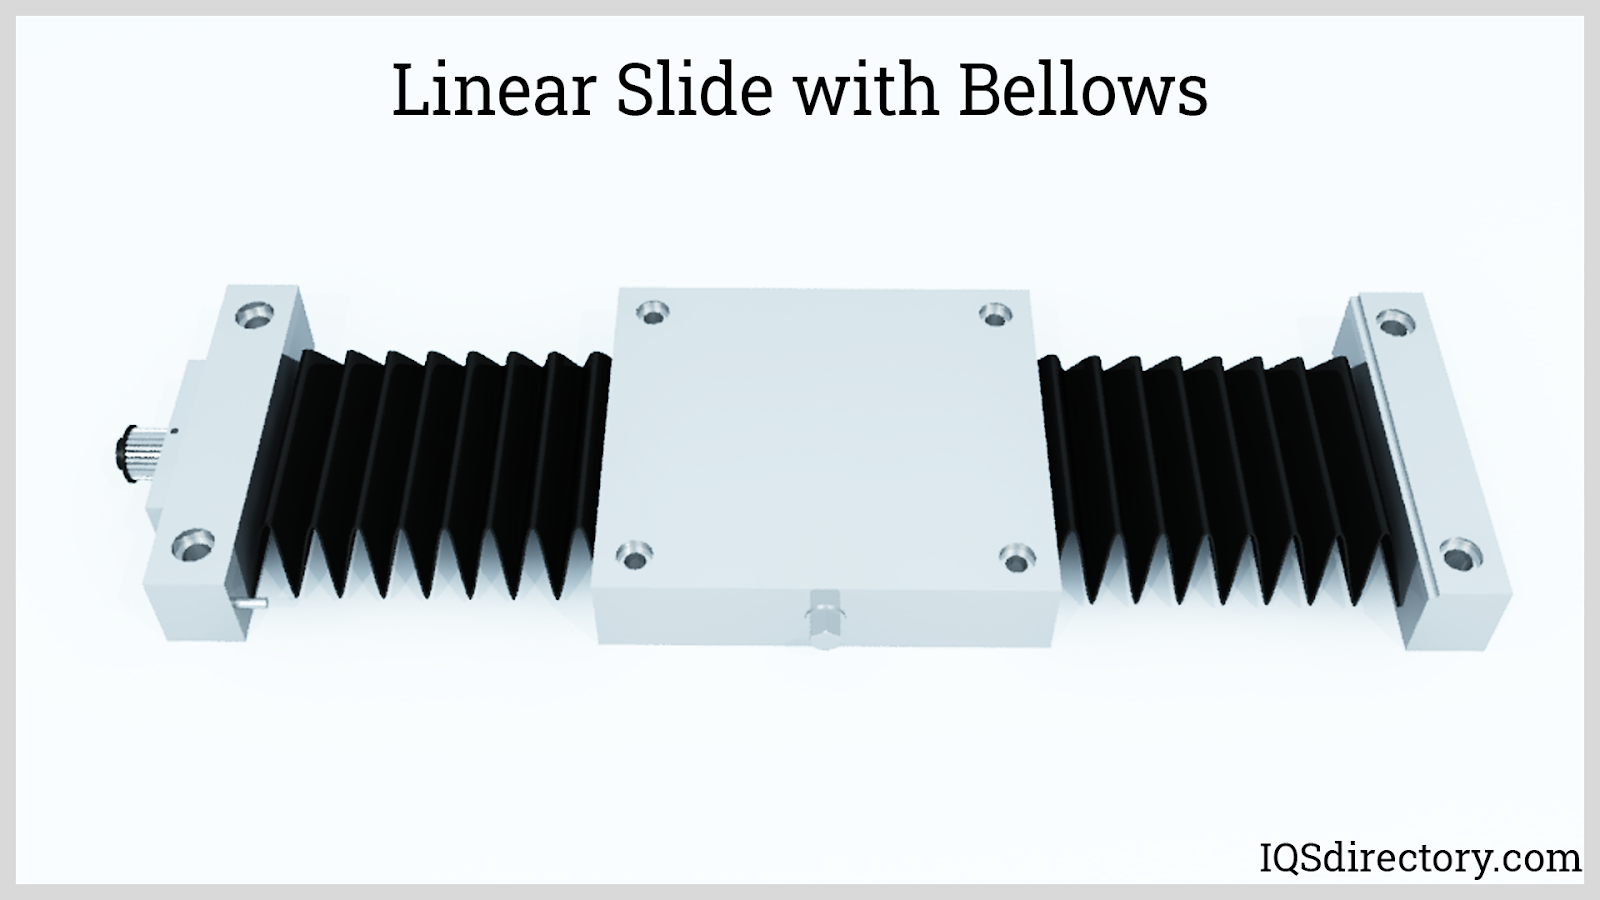 Linear Slide with Bellows